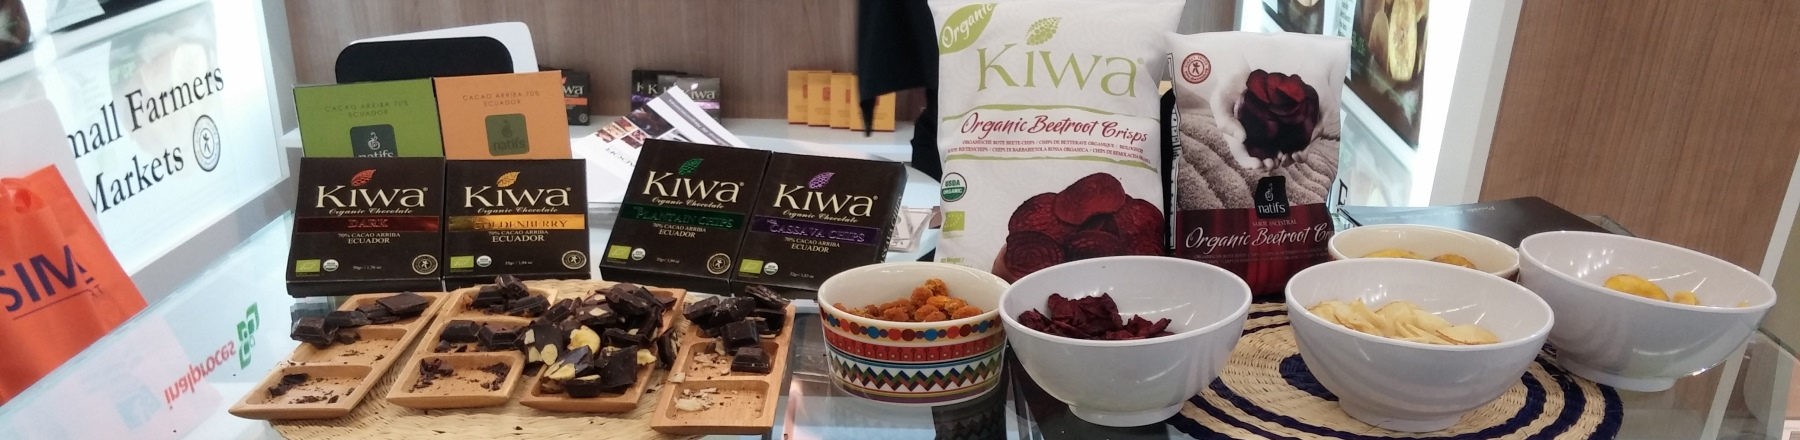 Organic chocolate from Ecuador brought to European market by KIWA Inalproces